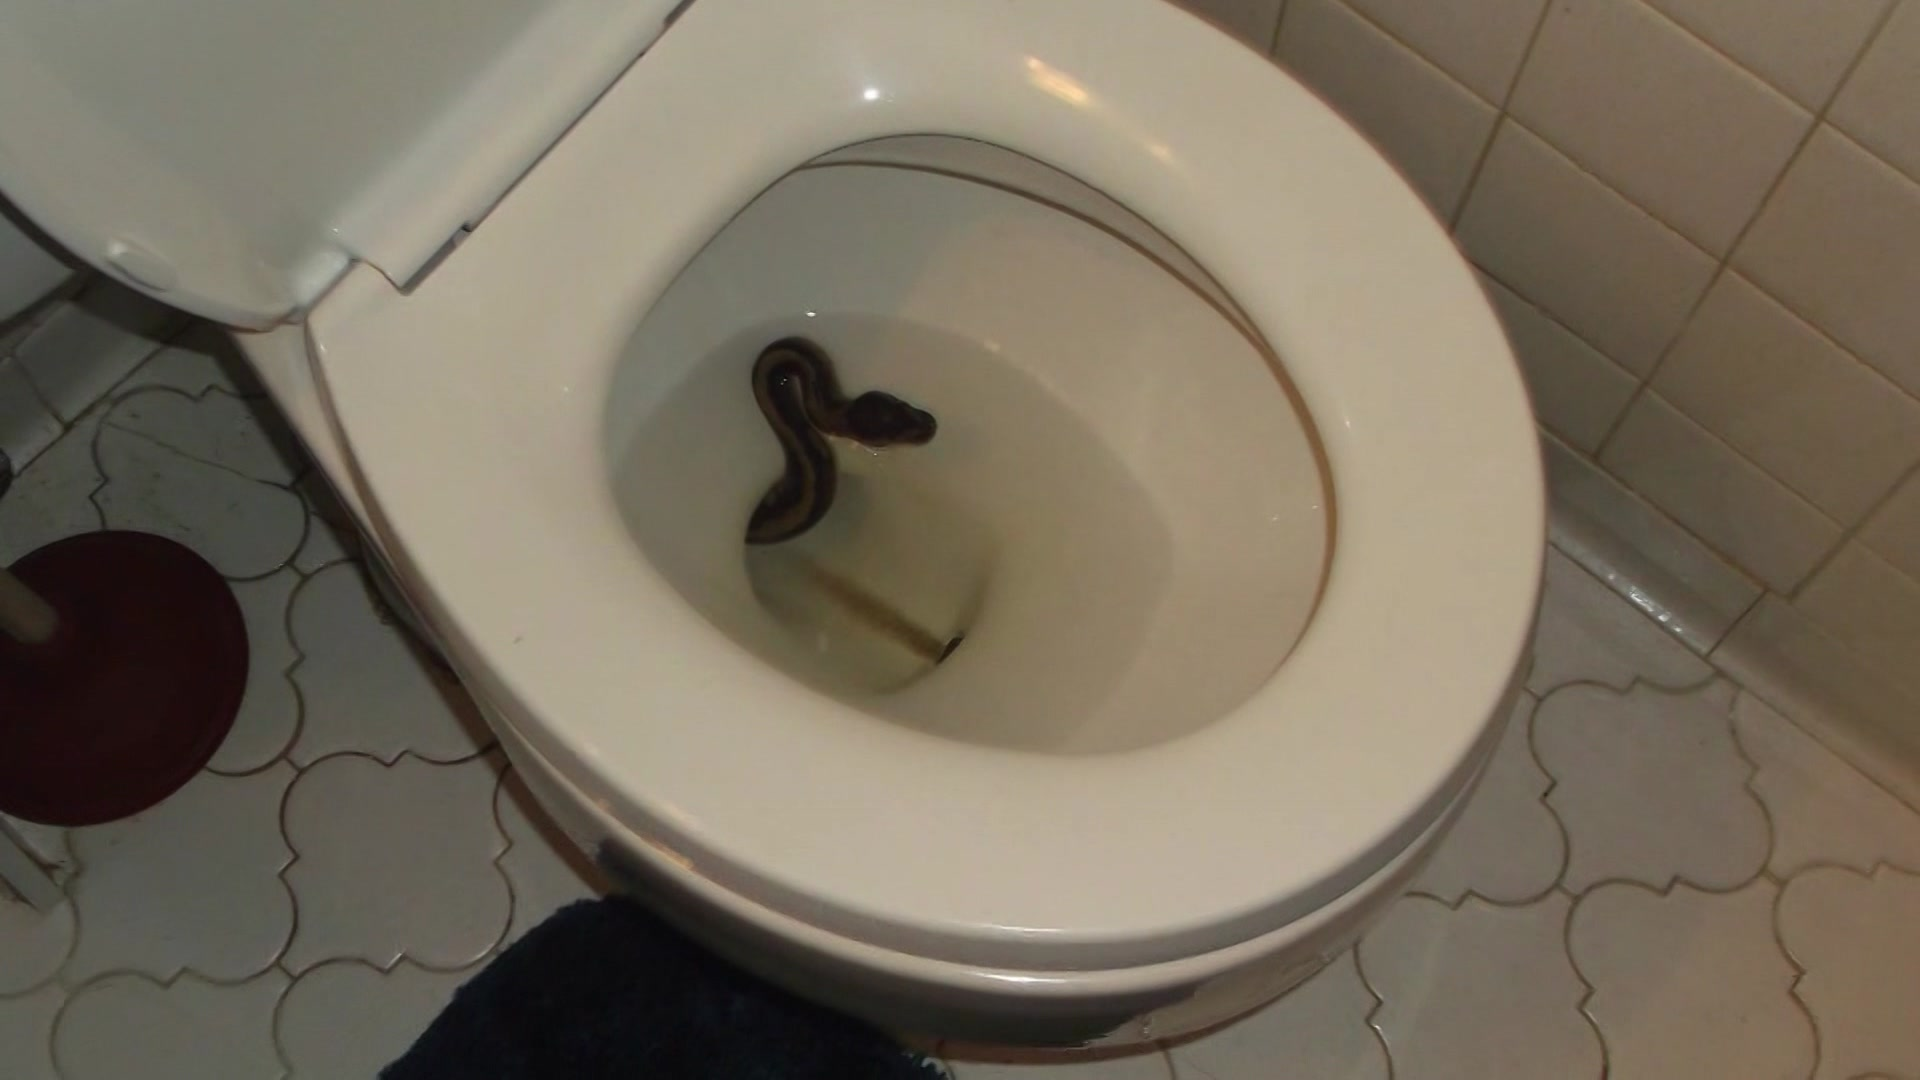 Virginia man finds live snake in toilet